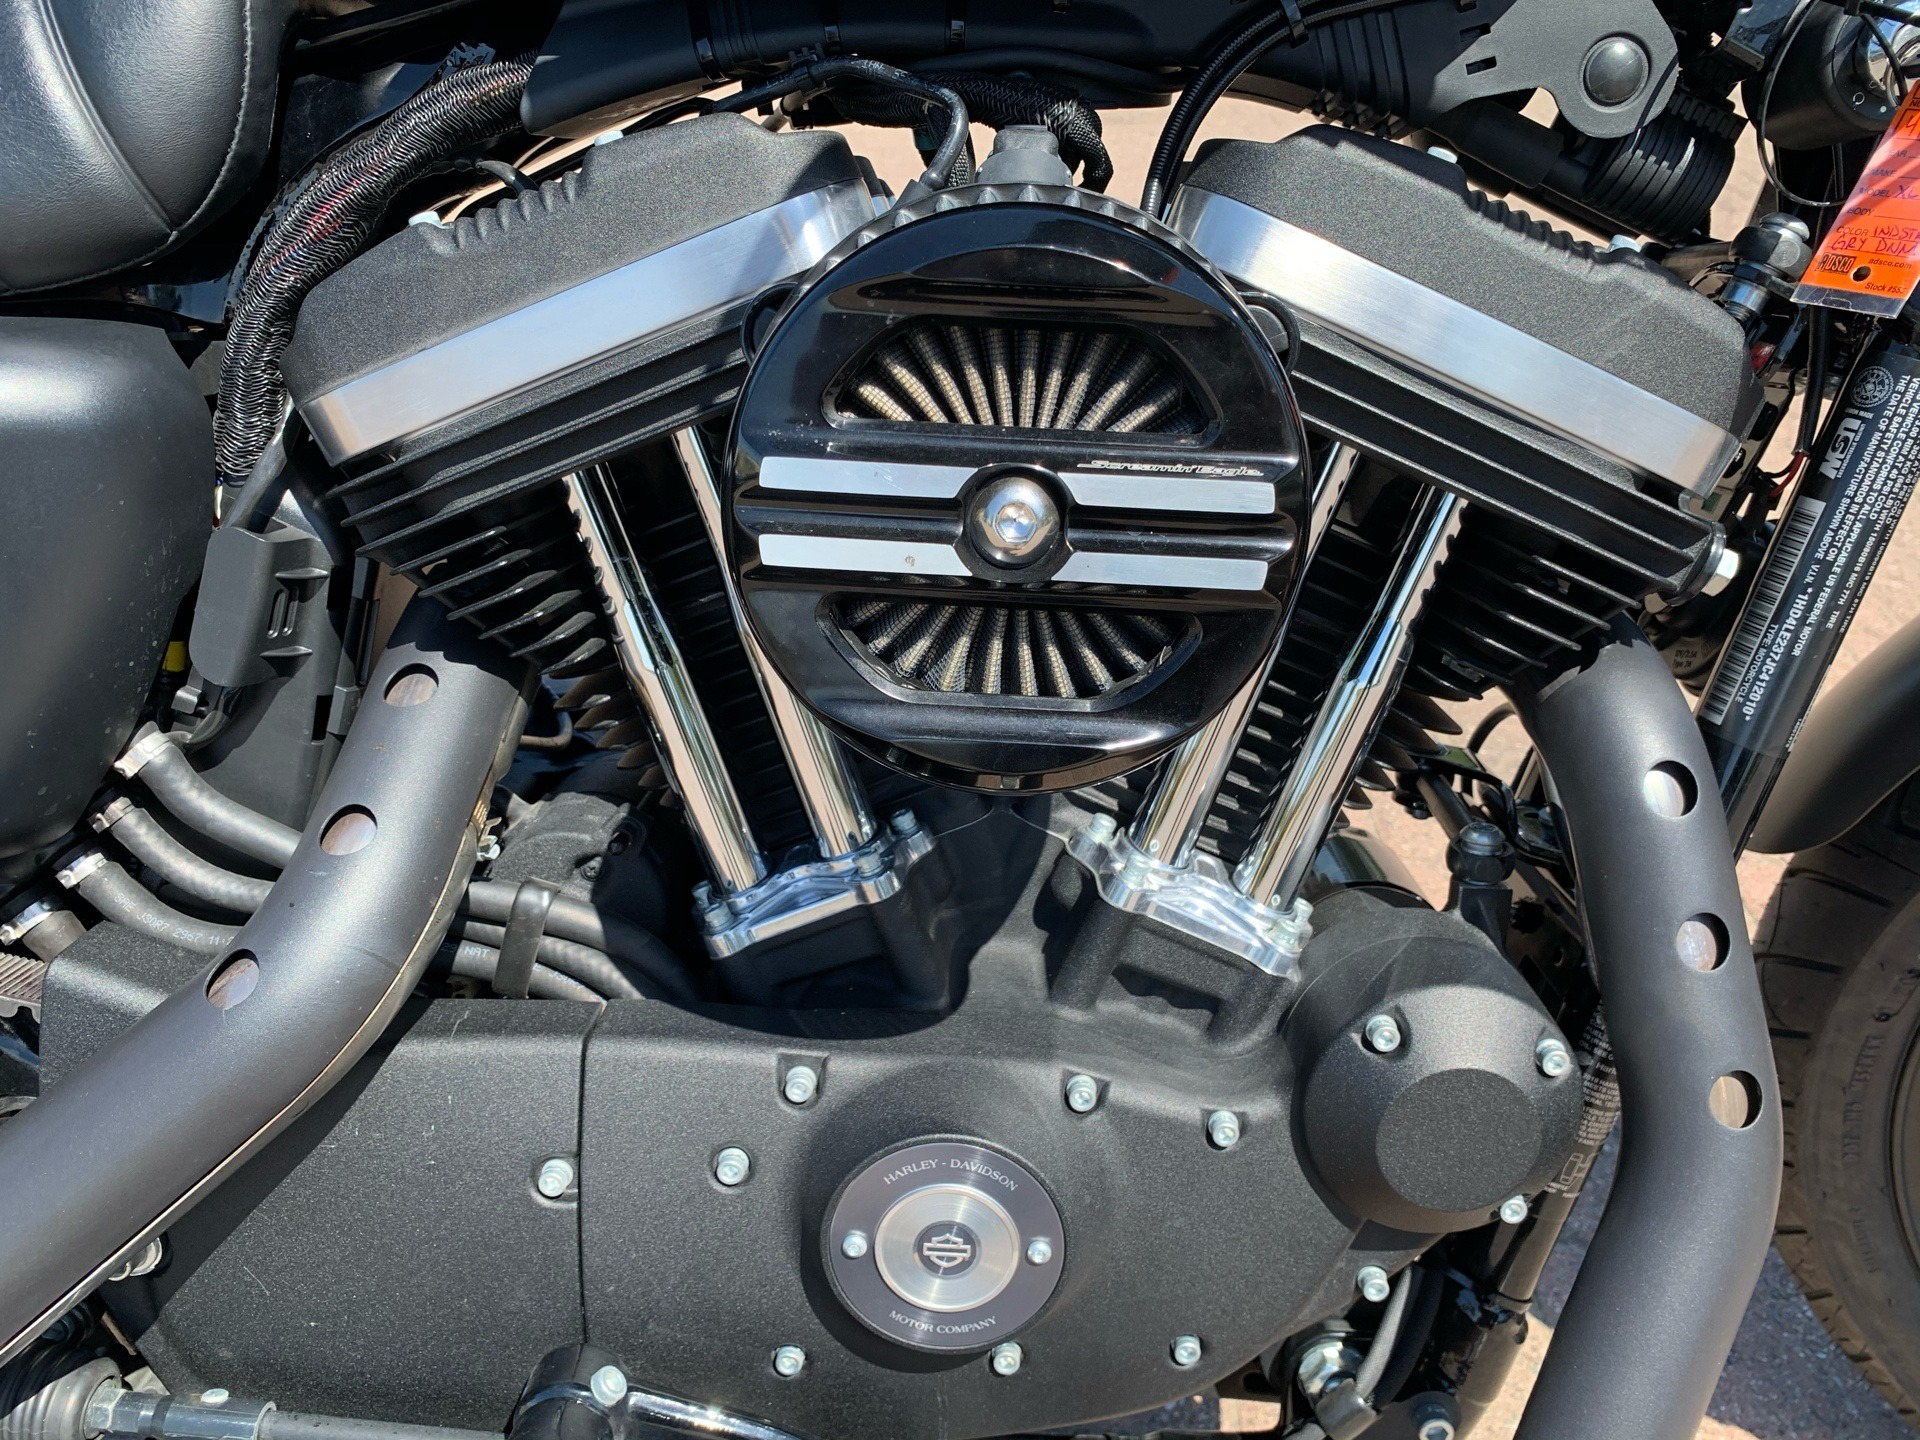 2018 Harley-Davidson Iron 883™ in Vacaville, California - Photo 6